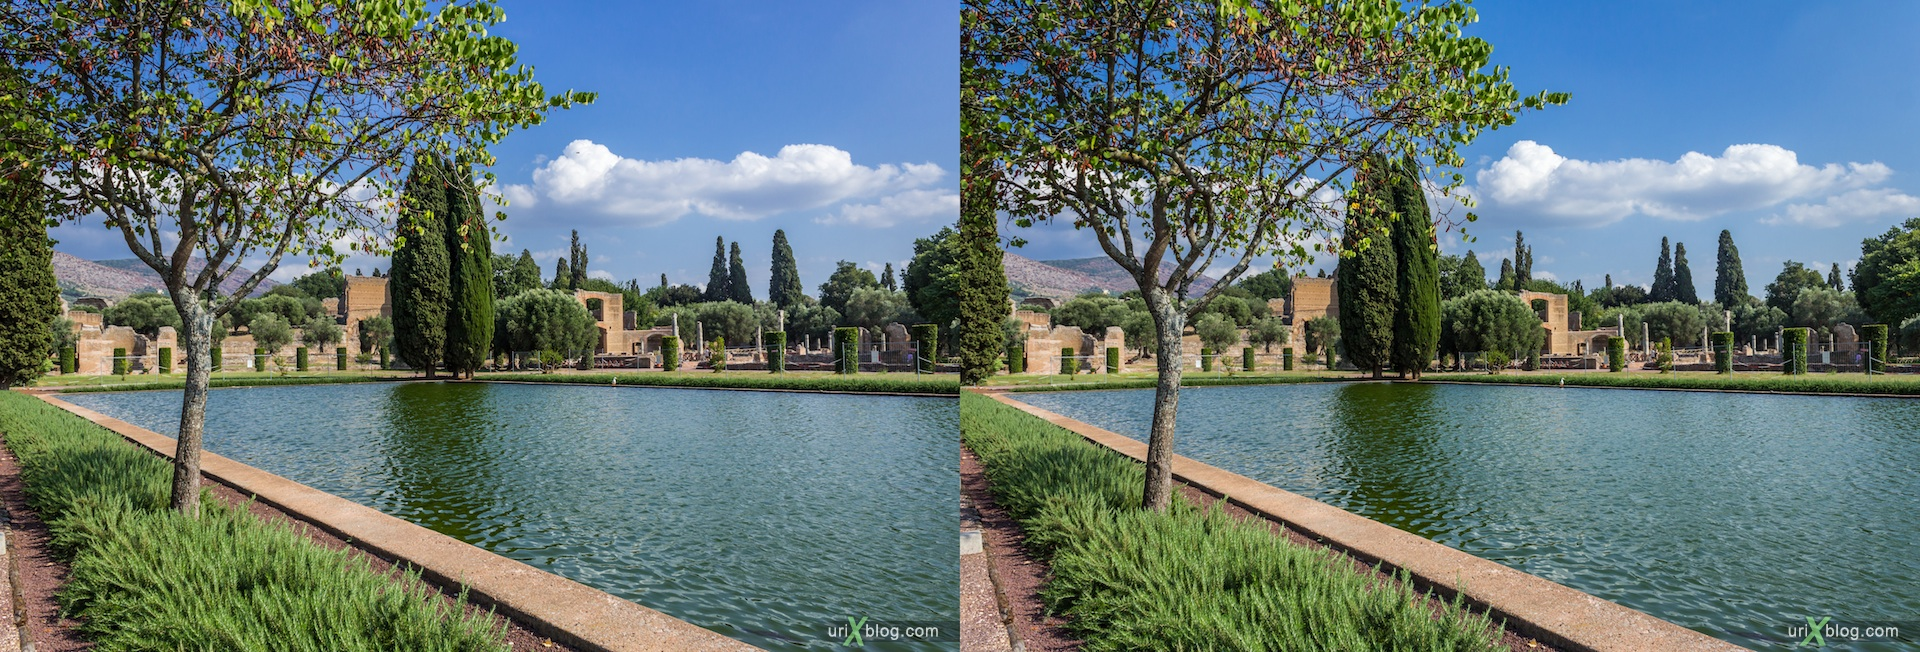 2012, Villa Adriana, Italy, Tivoli, Ancient Rome, 3D, stereo pair, cross-eyed, crossview, cross view stereo pair